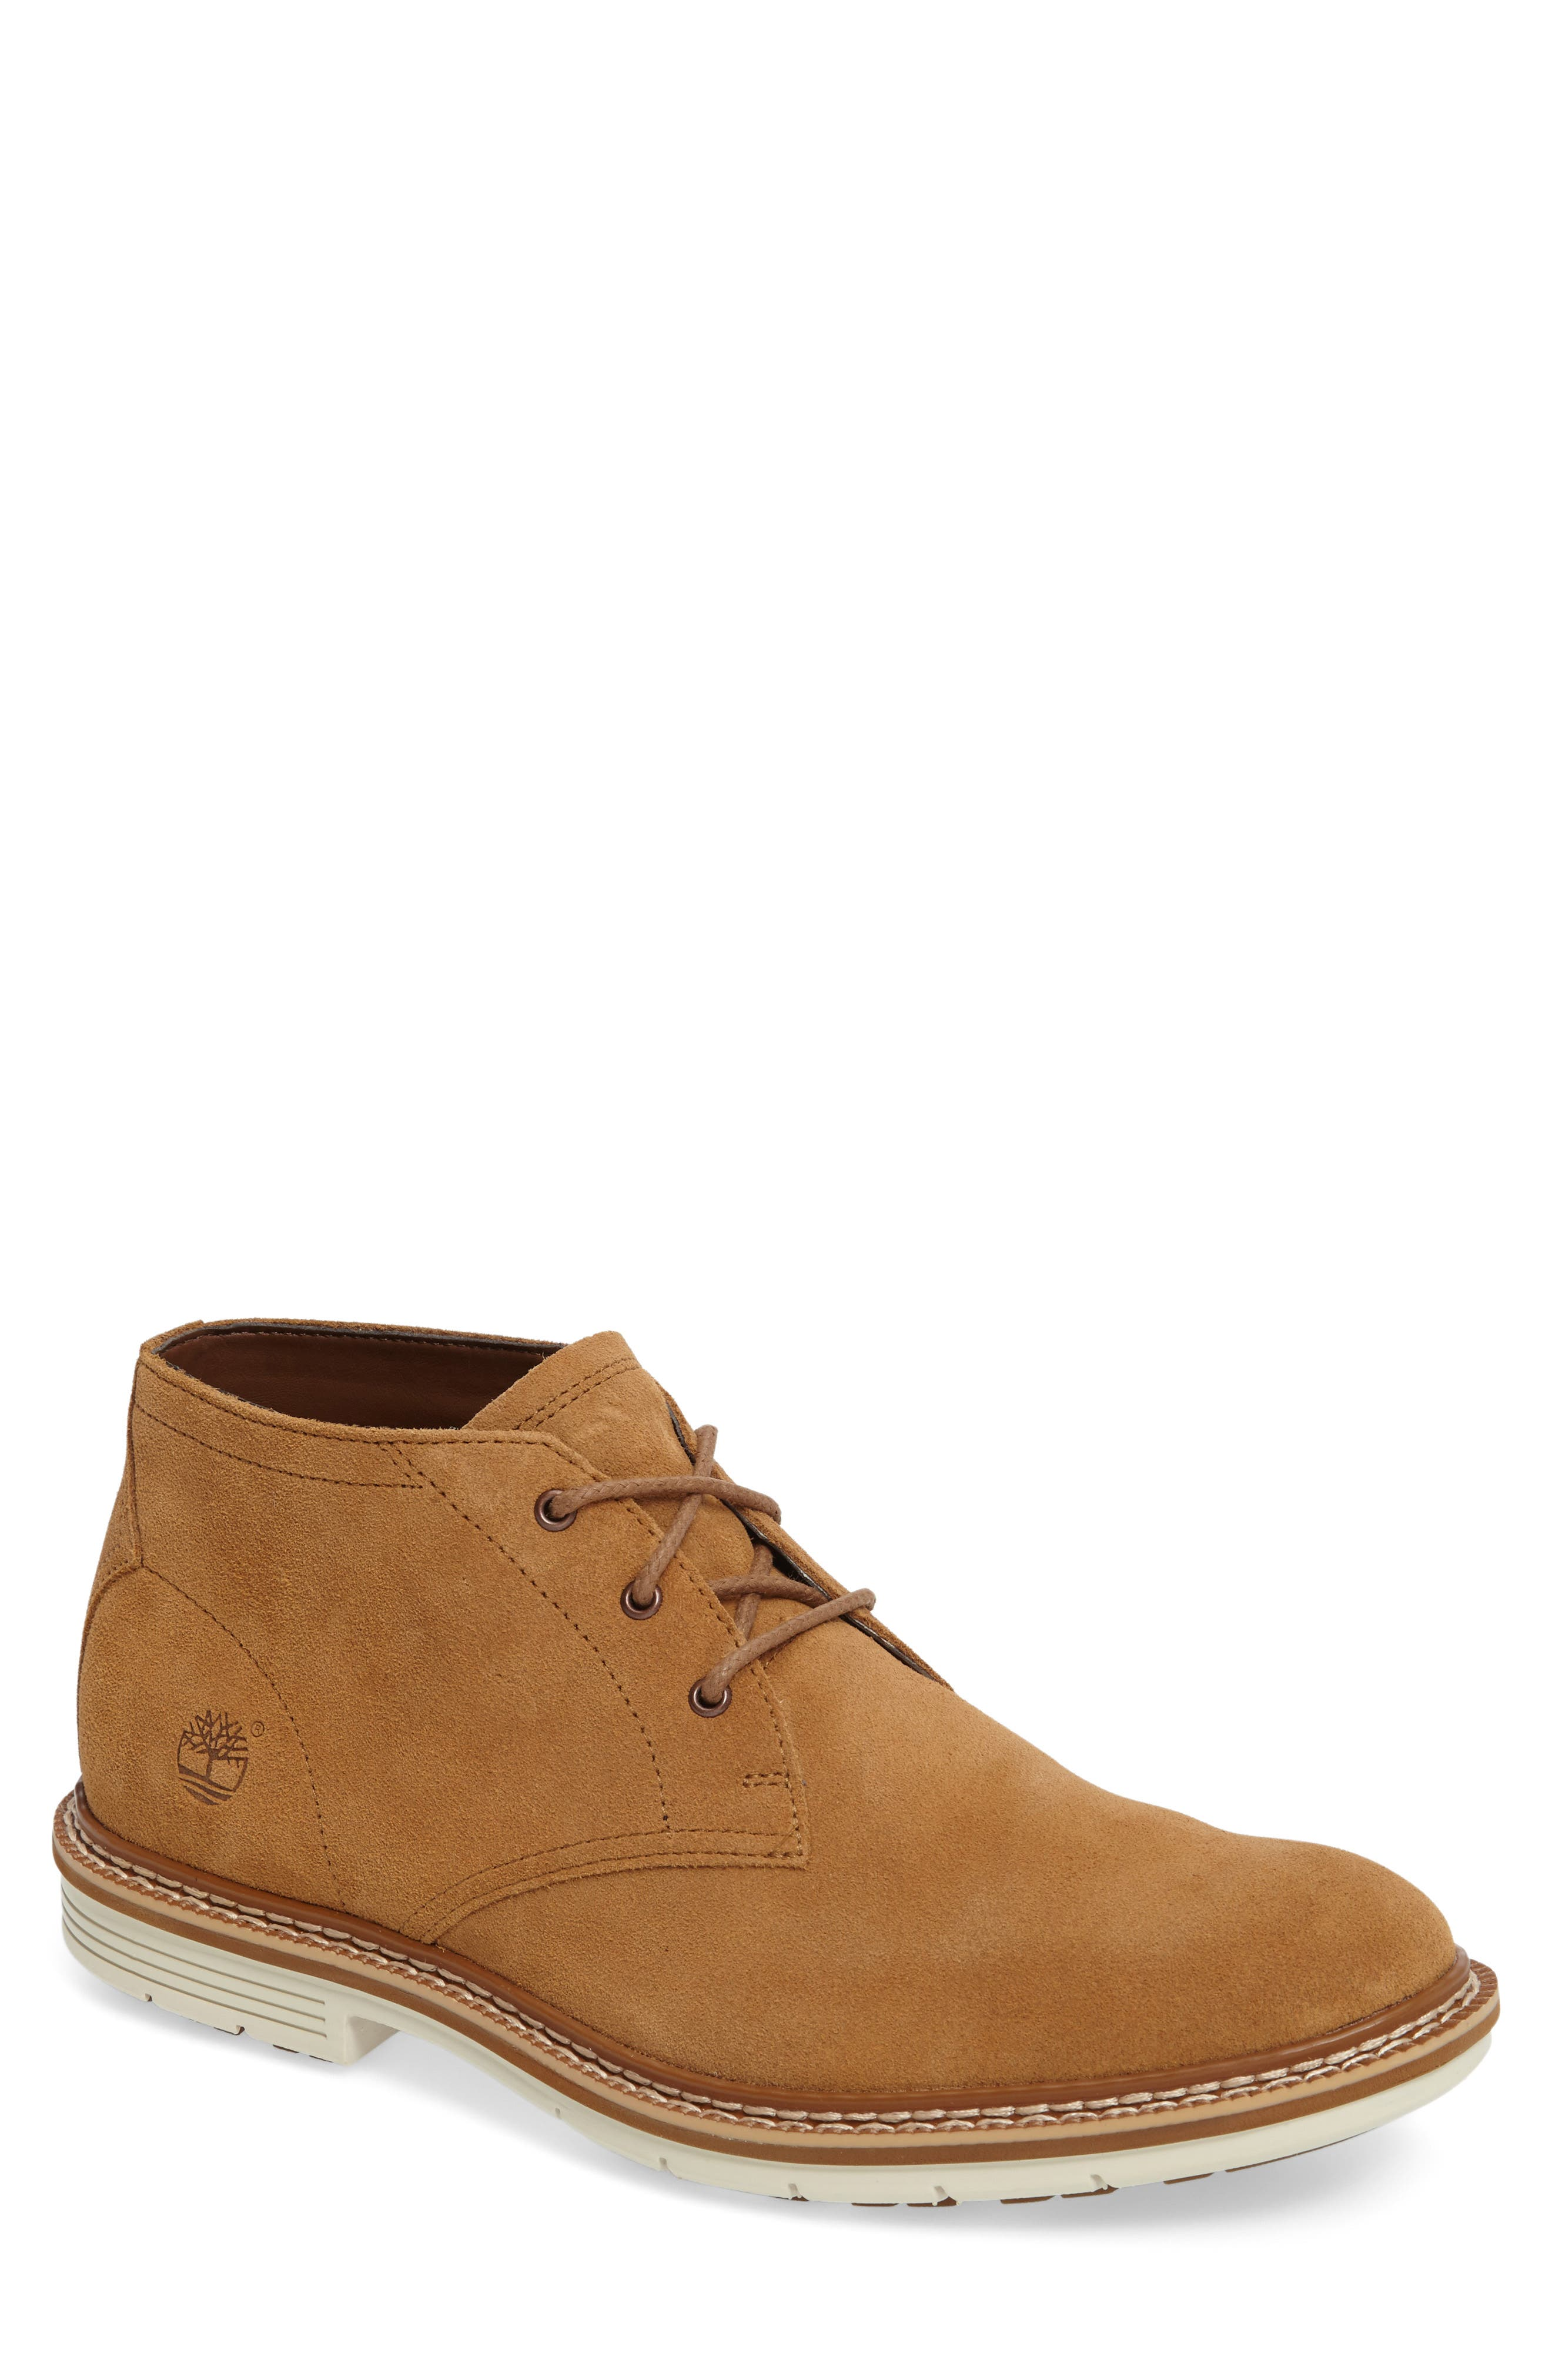 Naples Trail Chukka Boot,                         Main,                         color, Rubber Suede